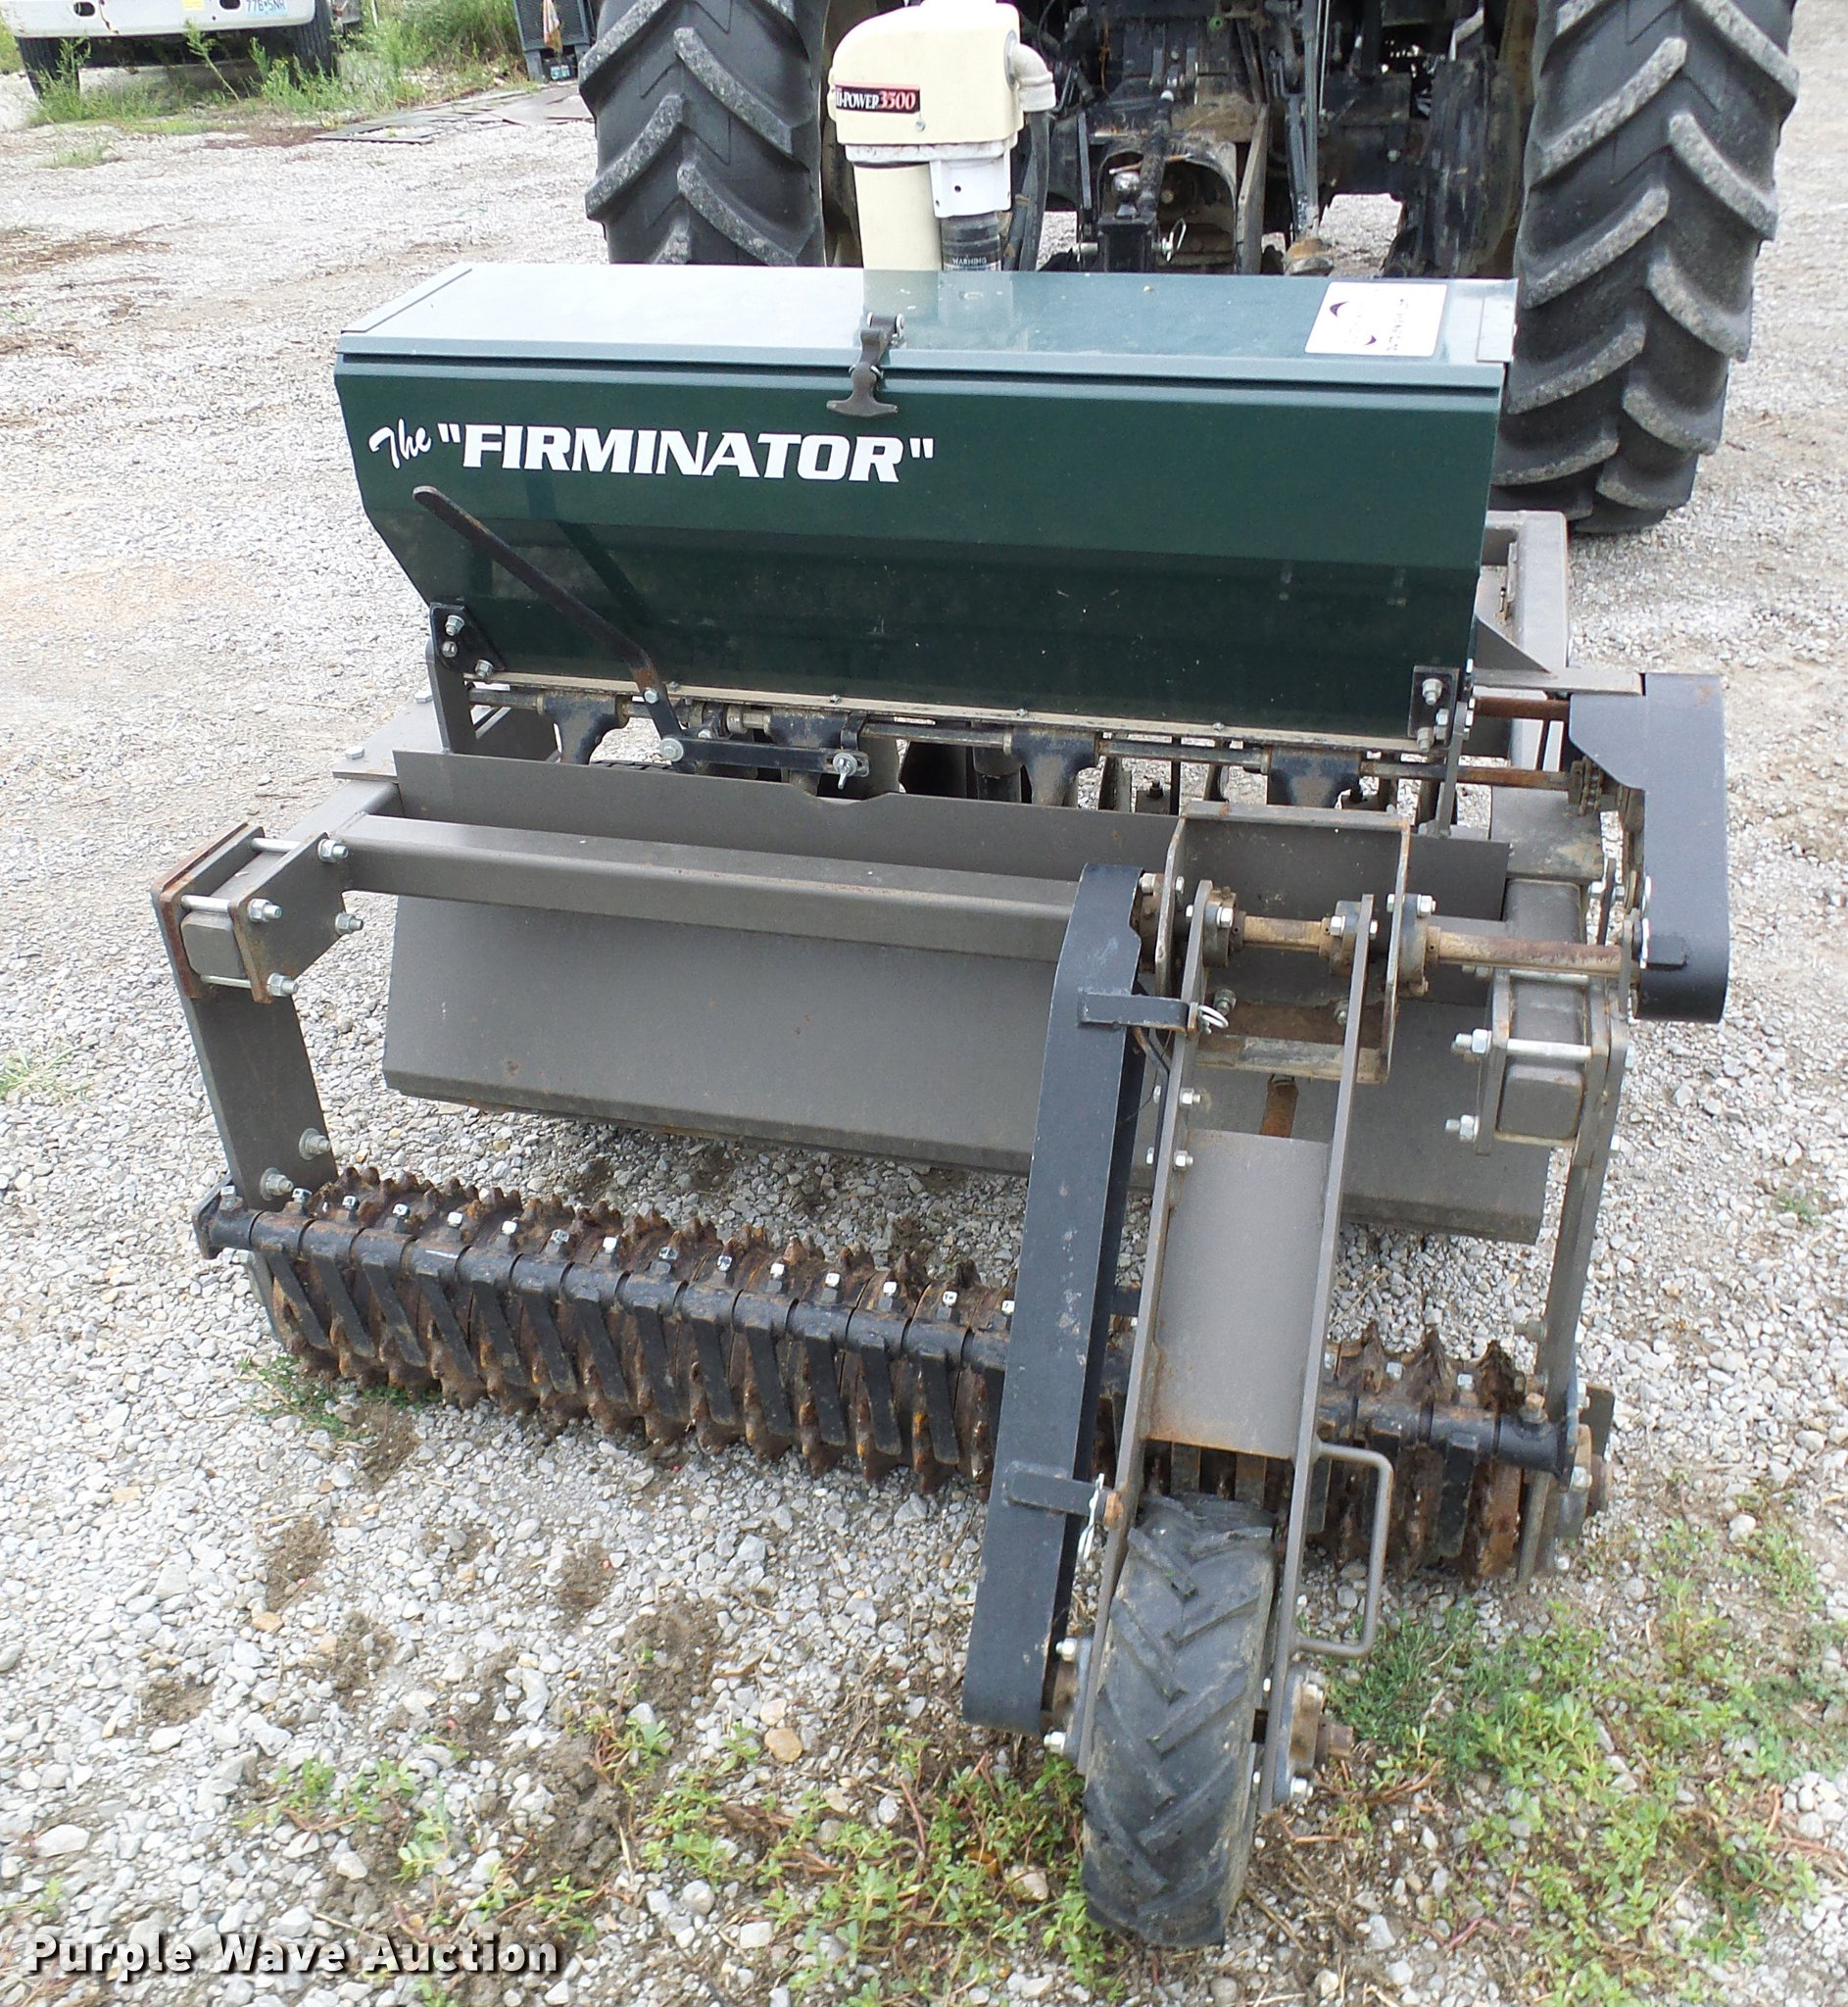 The Firminator Seeder Item De5208 Sold September 26 Veh